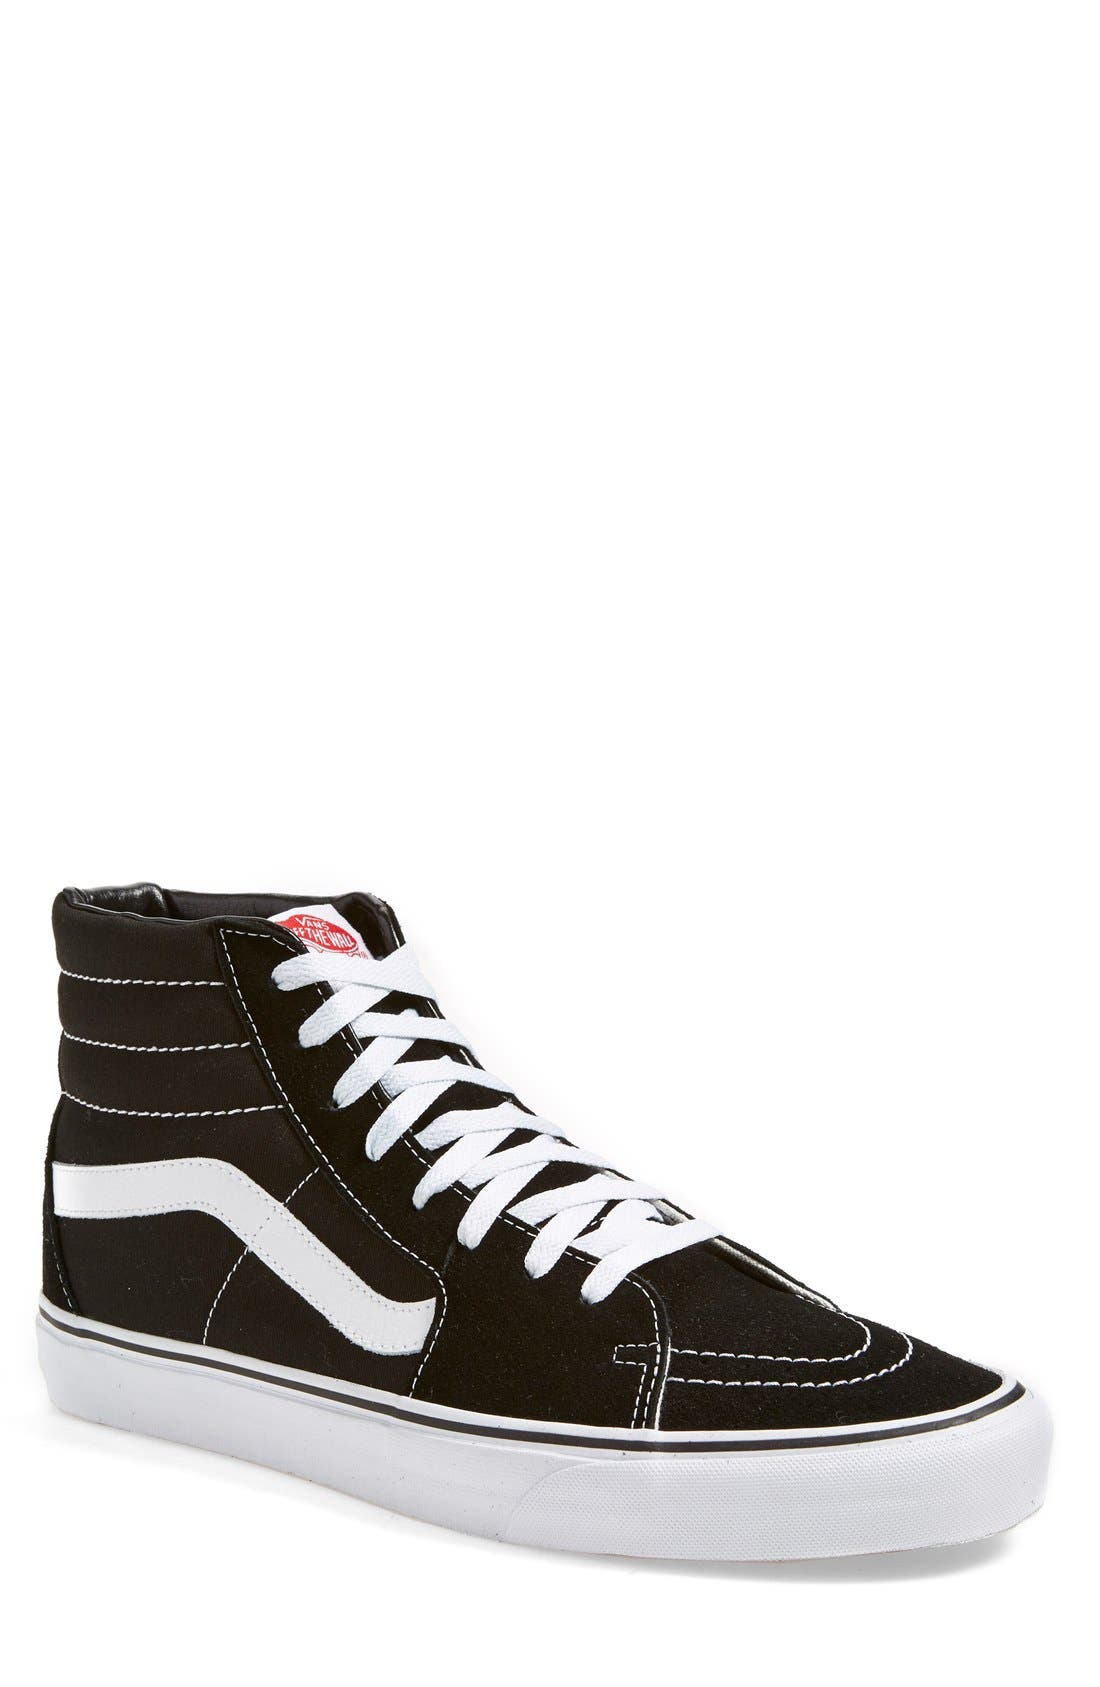 Alternate Image 1 Selected - Vans 'Sk8-Hi' Sneaker (Men)